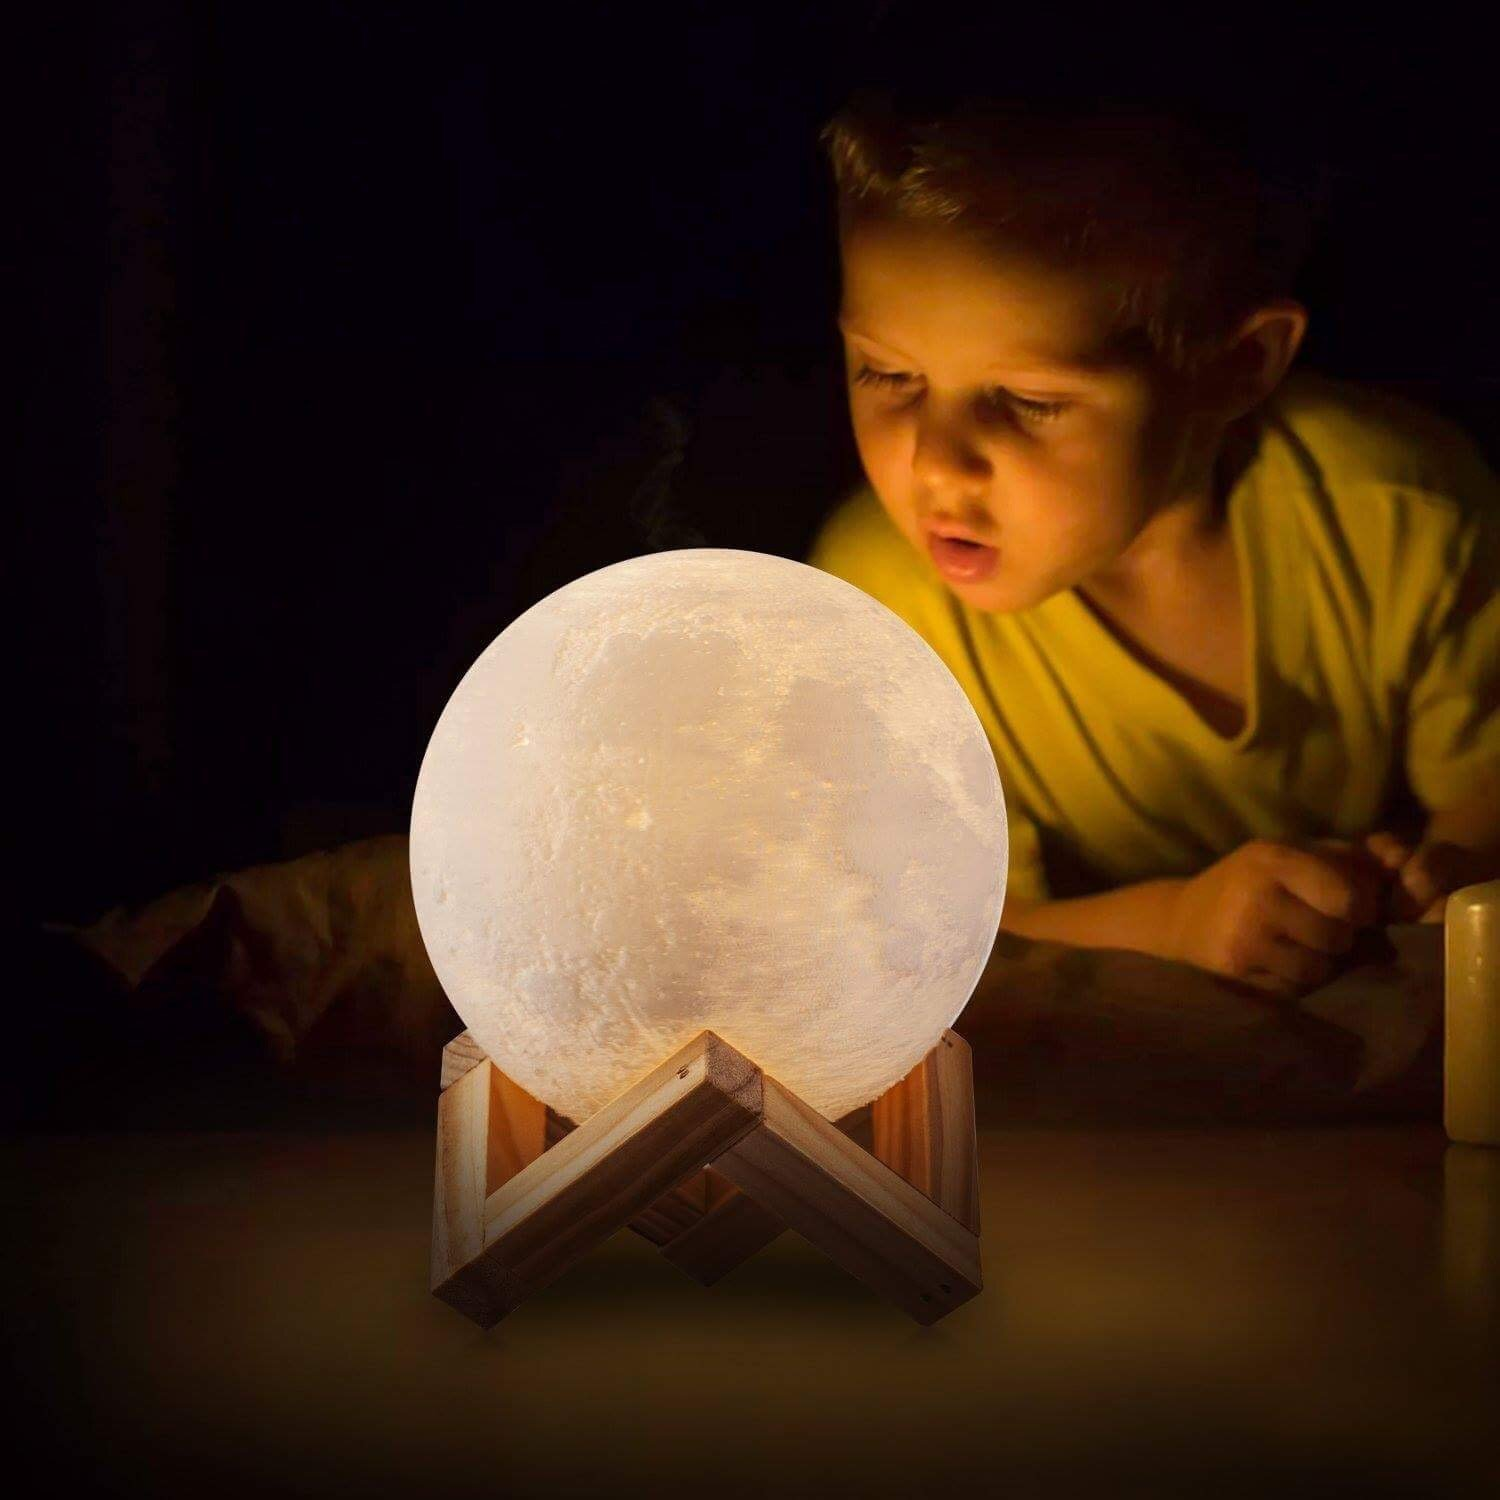 Moon Light - 3D Printing Moon - Stepless Dimmable - Moon Lamp Shade - Warm and White Touch Control Brightness with USB Charging - Moon Decor - Lunar Night Light with Wooden Mount - Moon Gifts 3.9 Inch